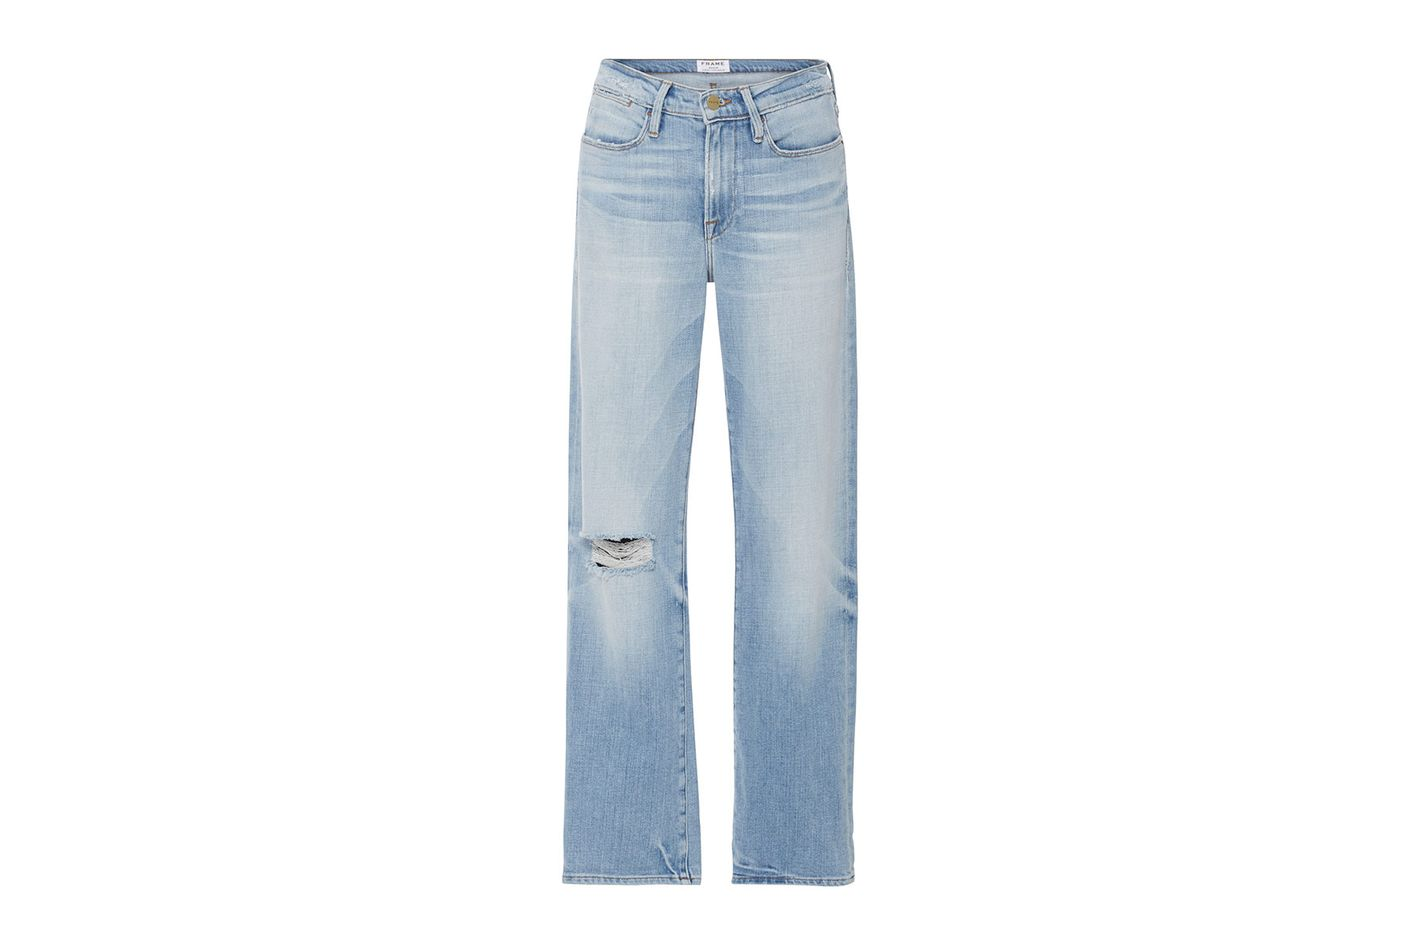 Frame Denim Le High '70s Straight Fit High Rise Jeans